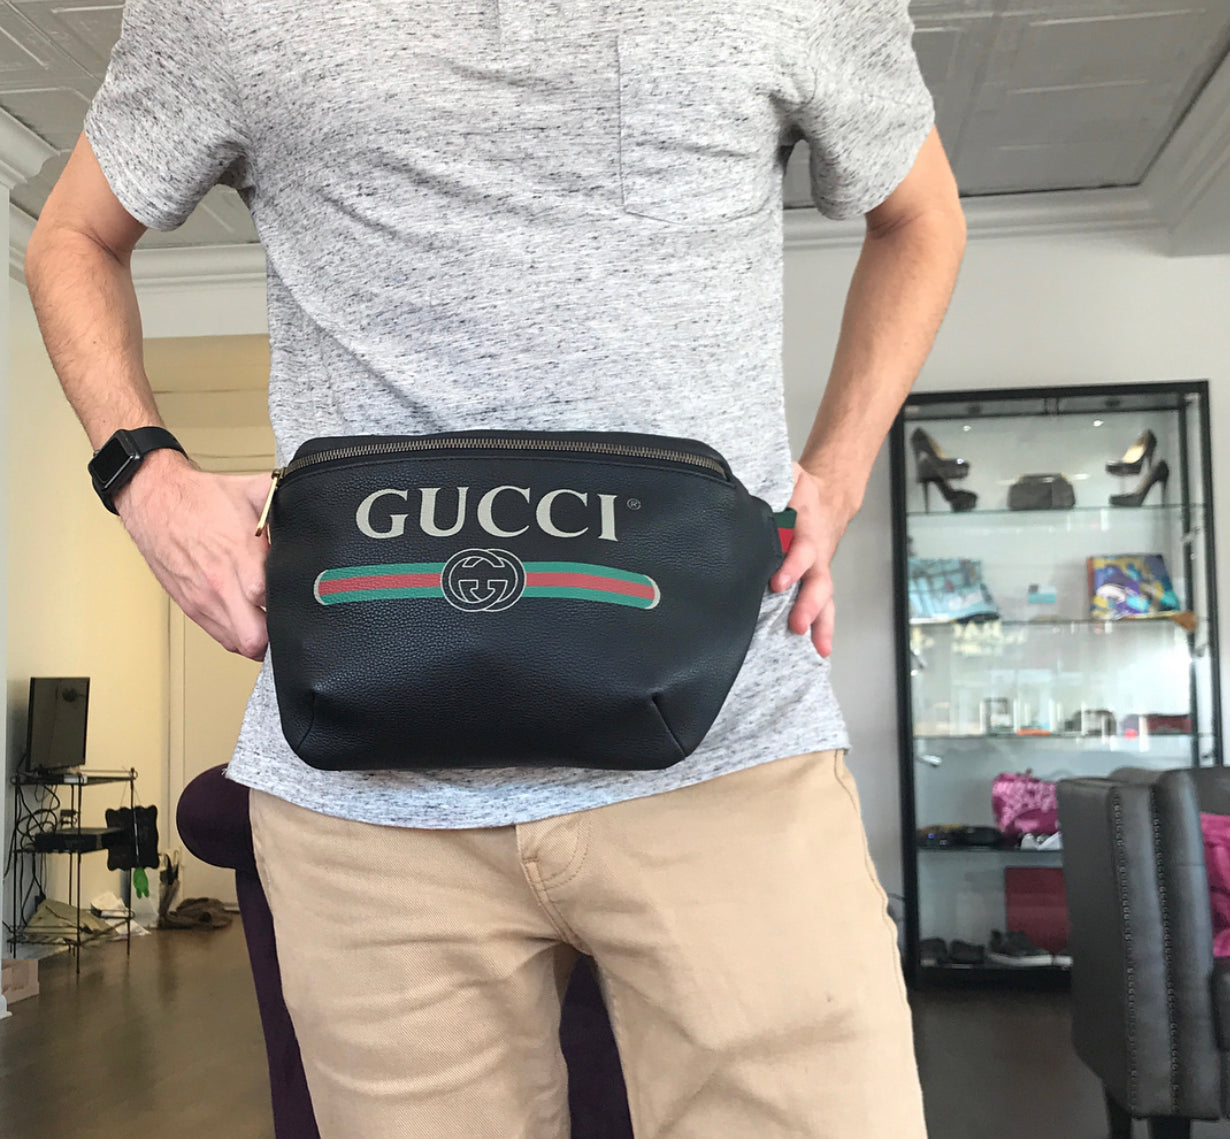 21e4f628176b ... Load image into Gallery viewer, Gucci Print Large Leather Belt Bag/Fanny  Pack ...